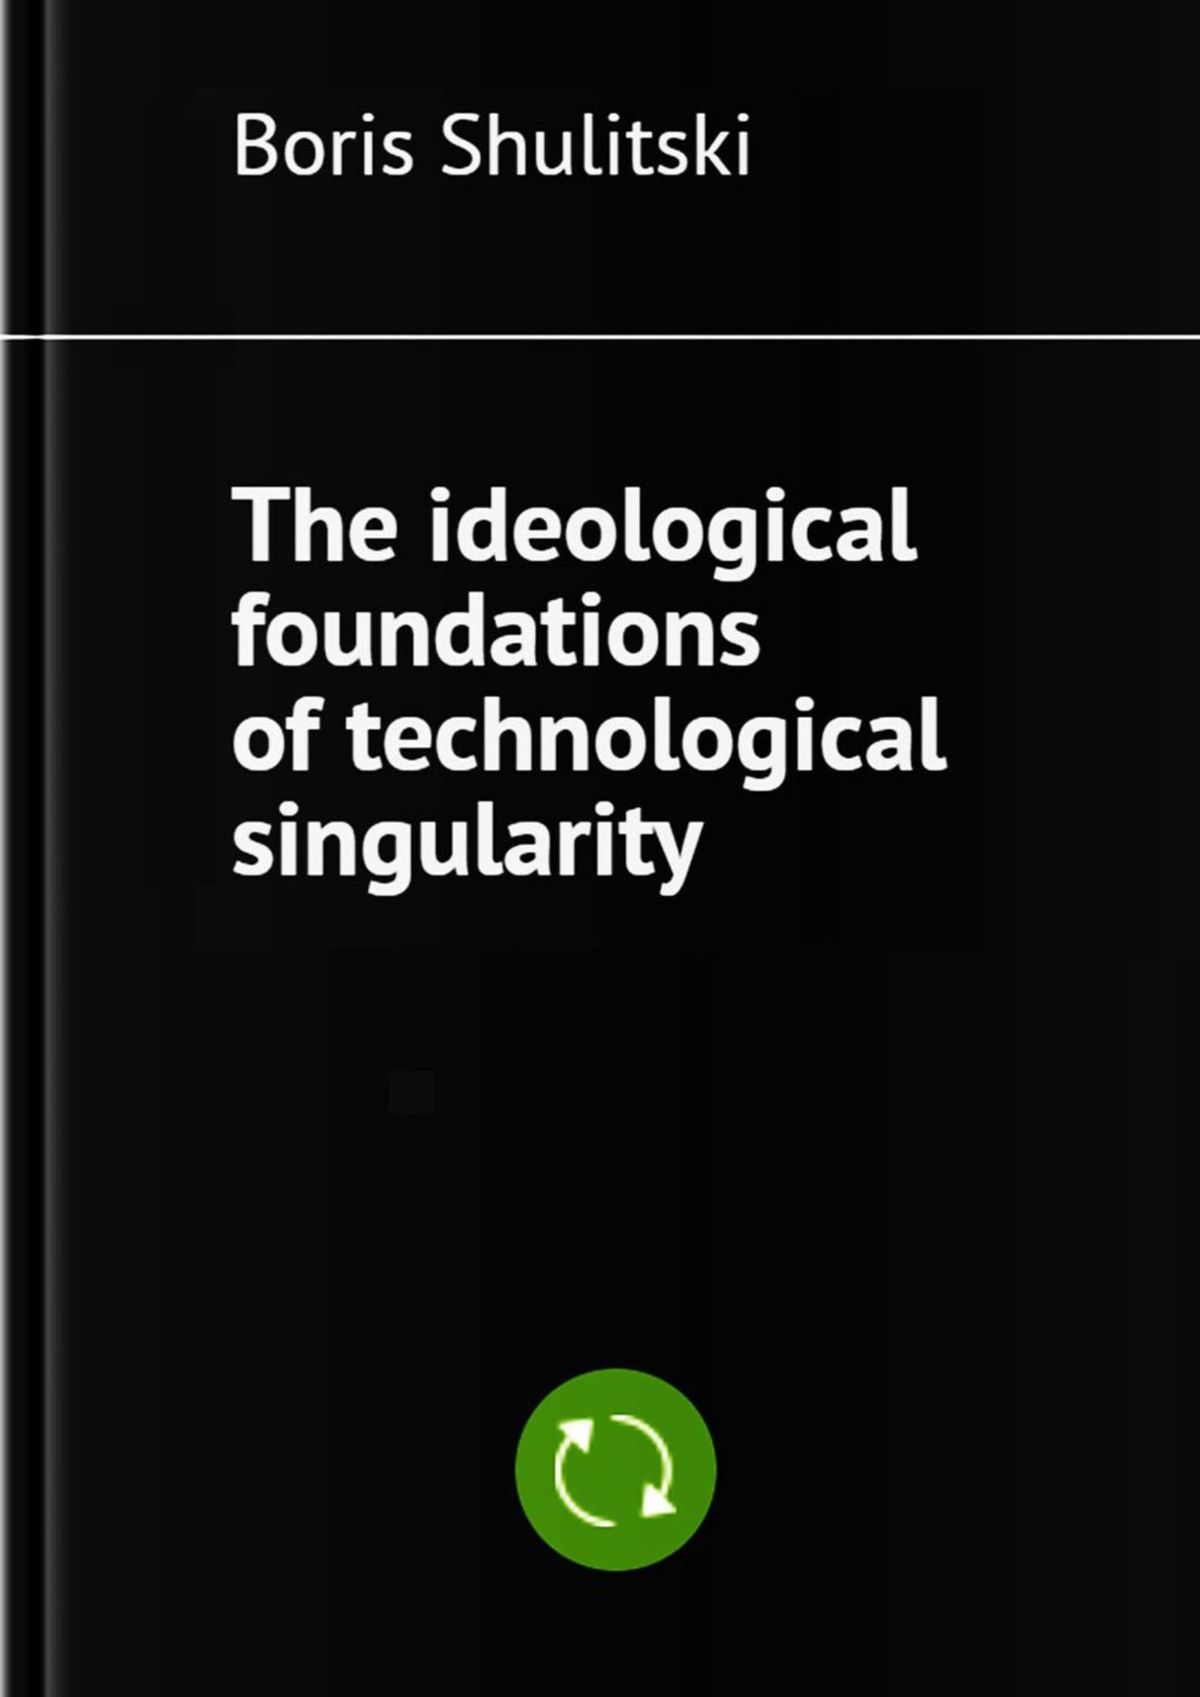 цена Boris Shulitski The ideological foundations of technological singularity